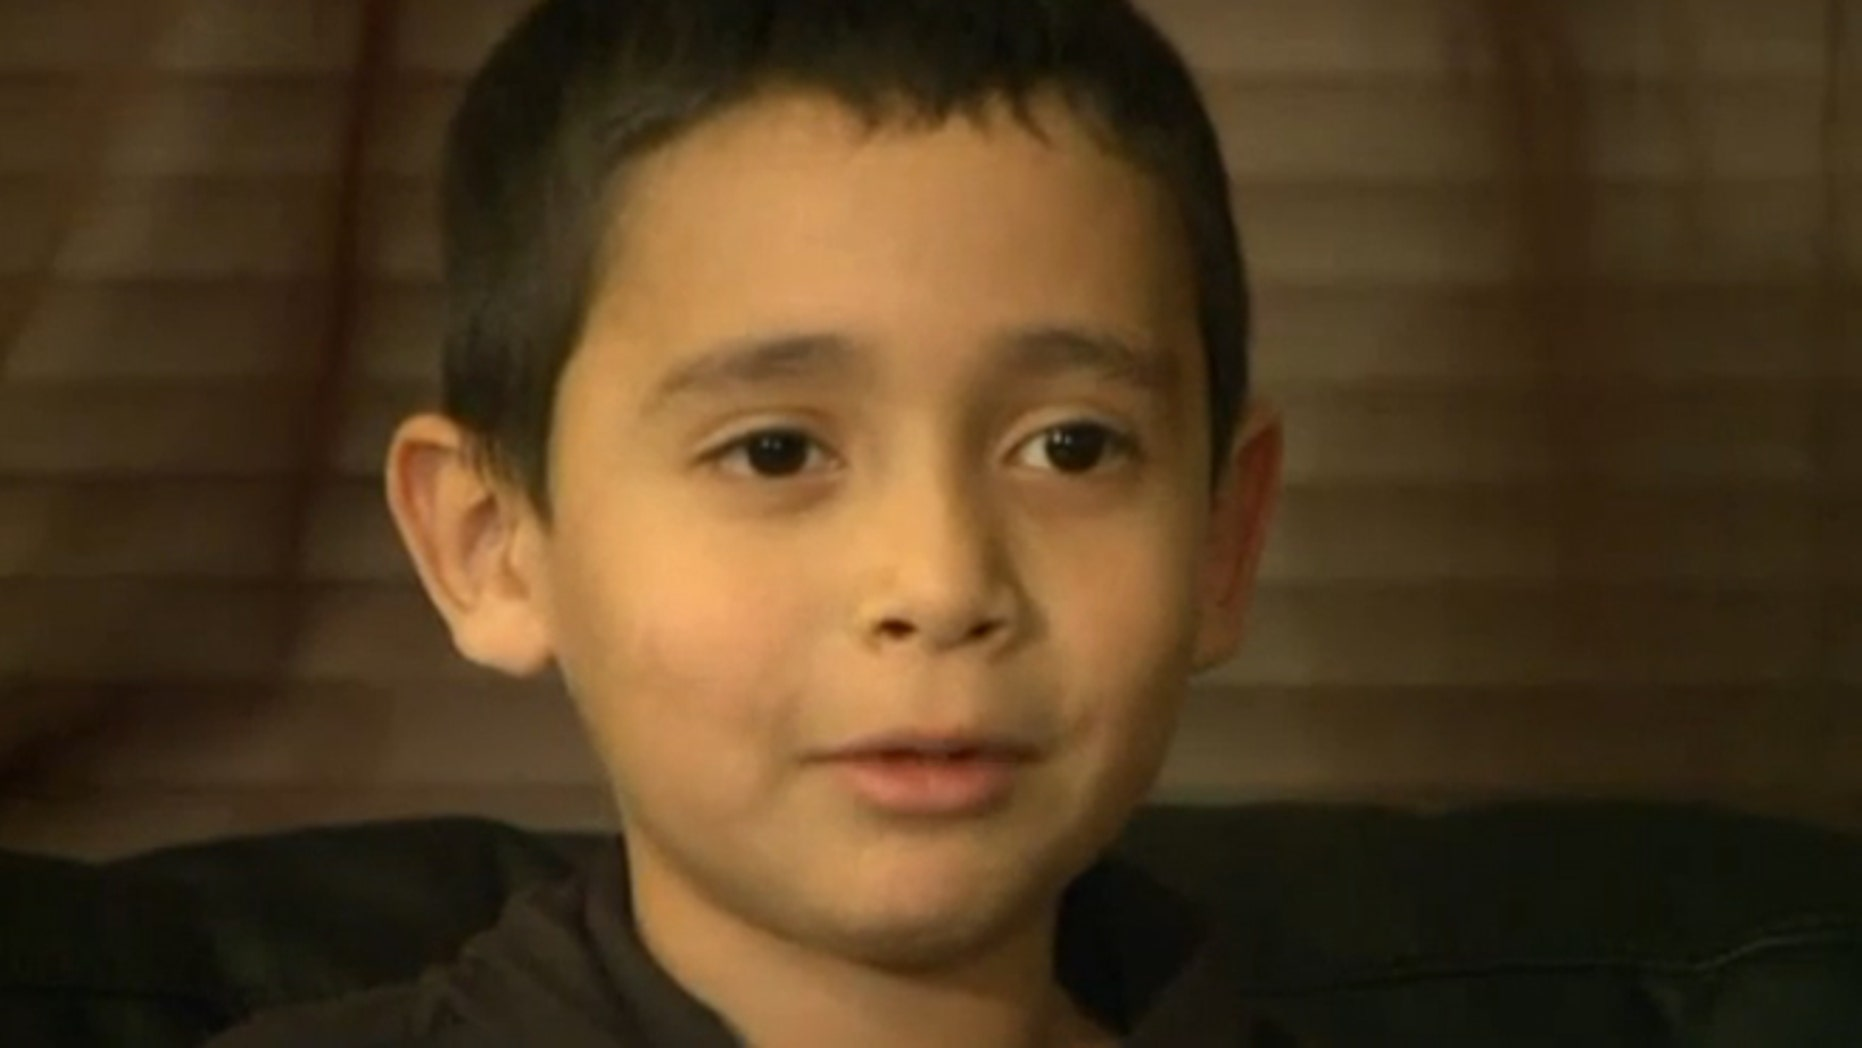 Xavier, a first-grader in Washington state, says he was told by a lunch lady that he could not eat from a sack lunch because he had a zero balance.